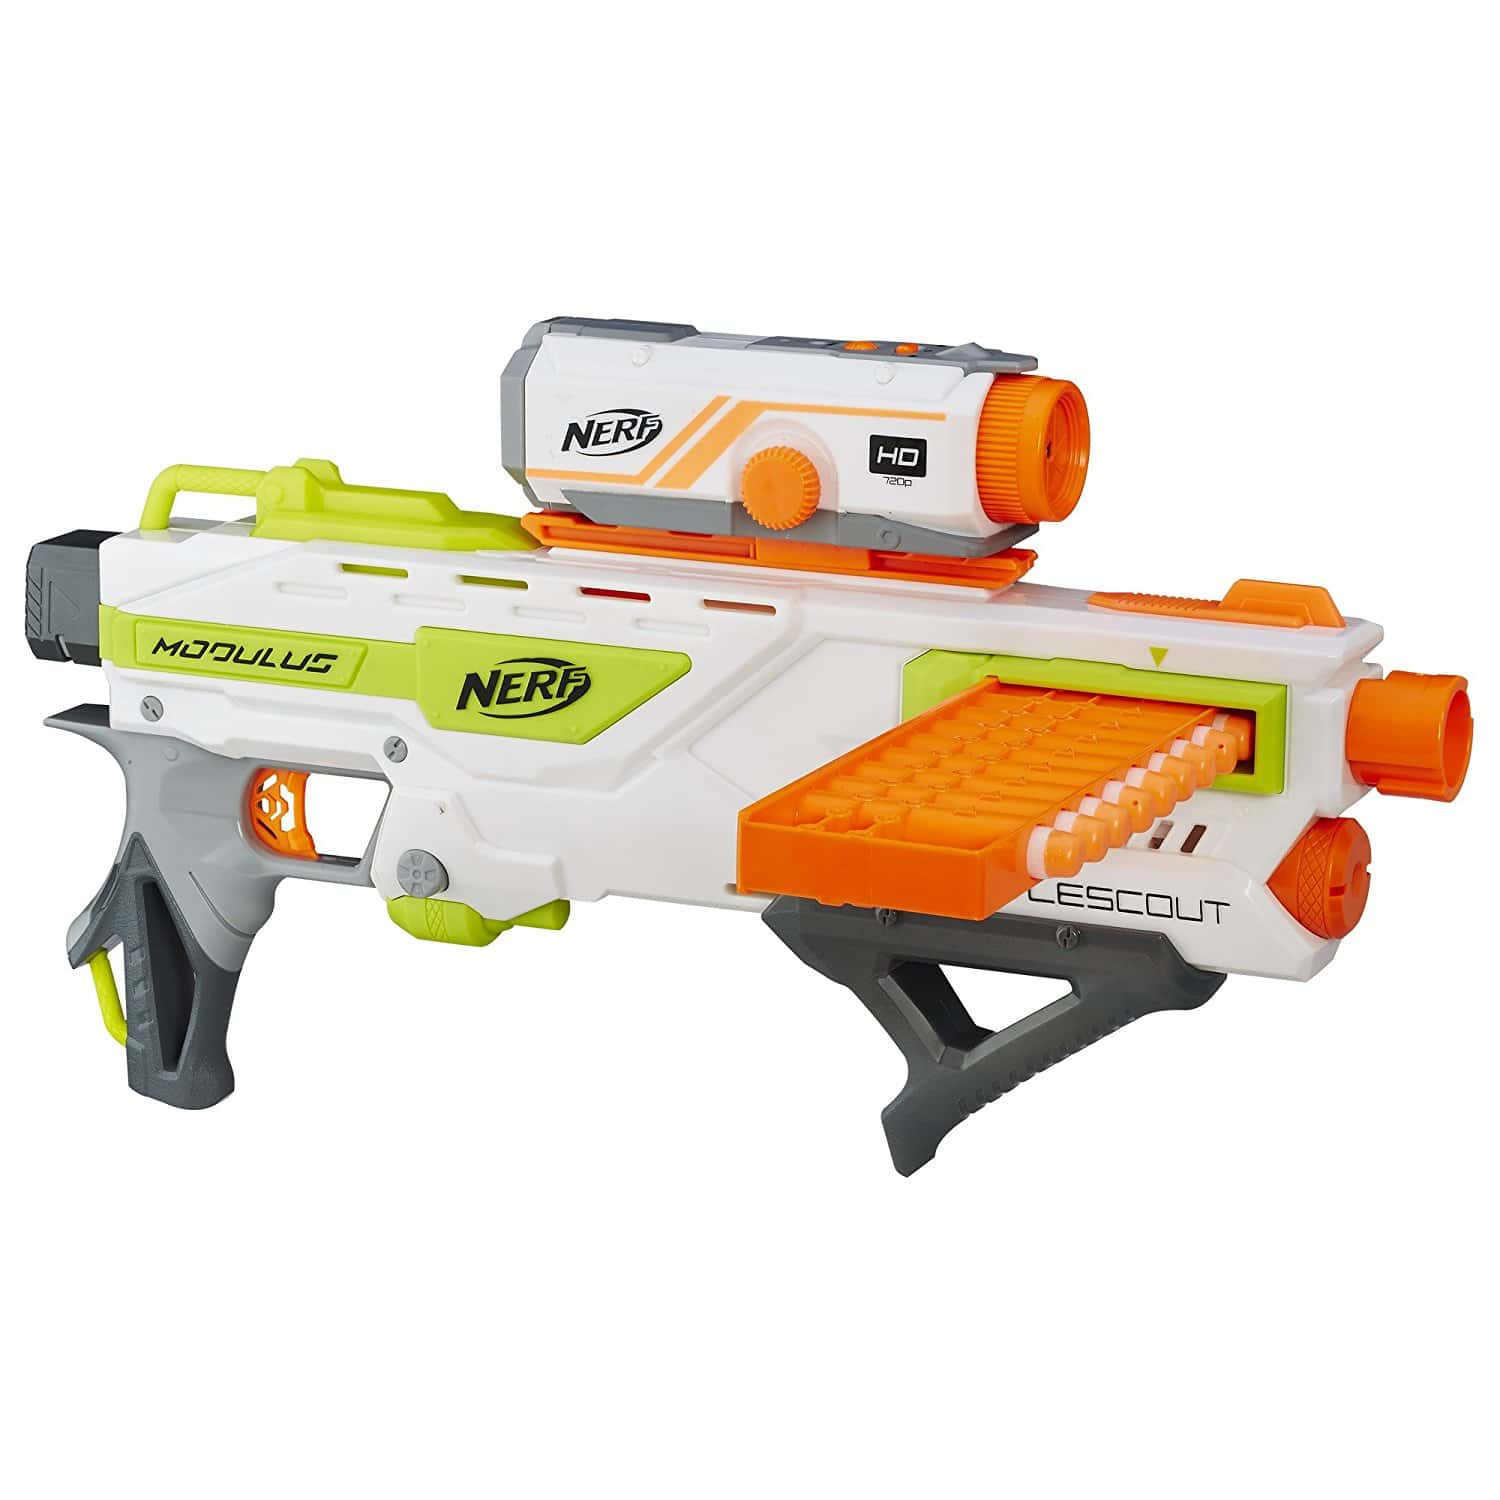 Nerf Modulus Battlescout ics 10